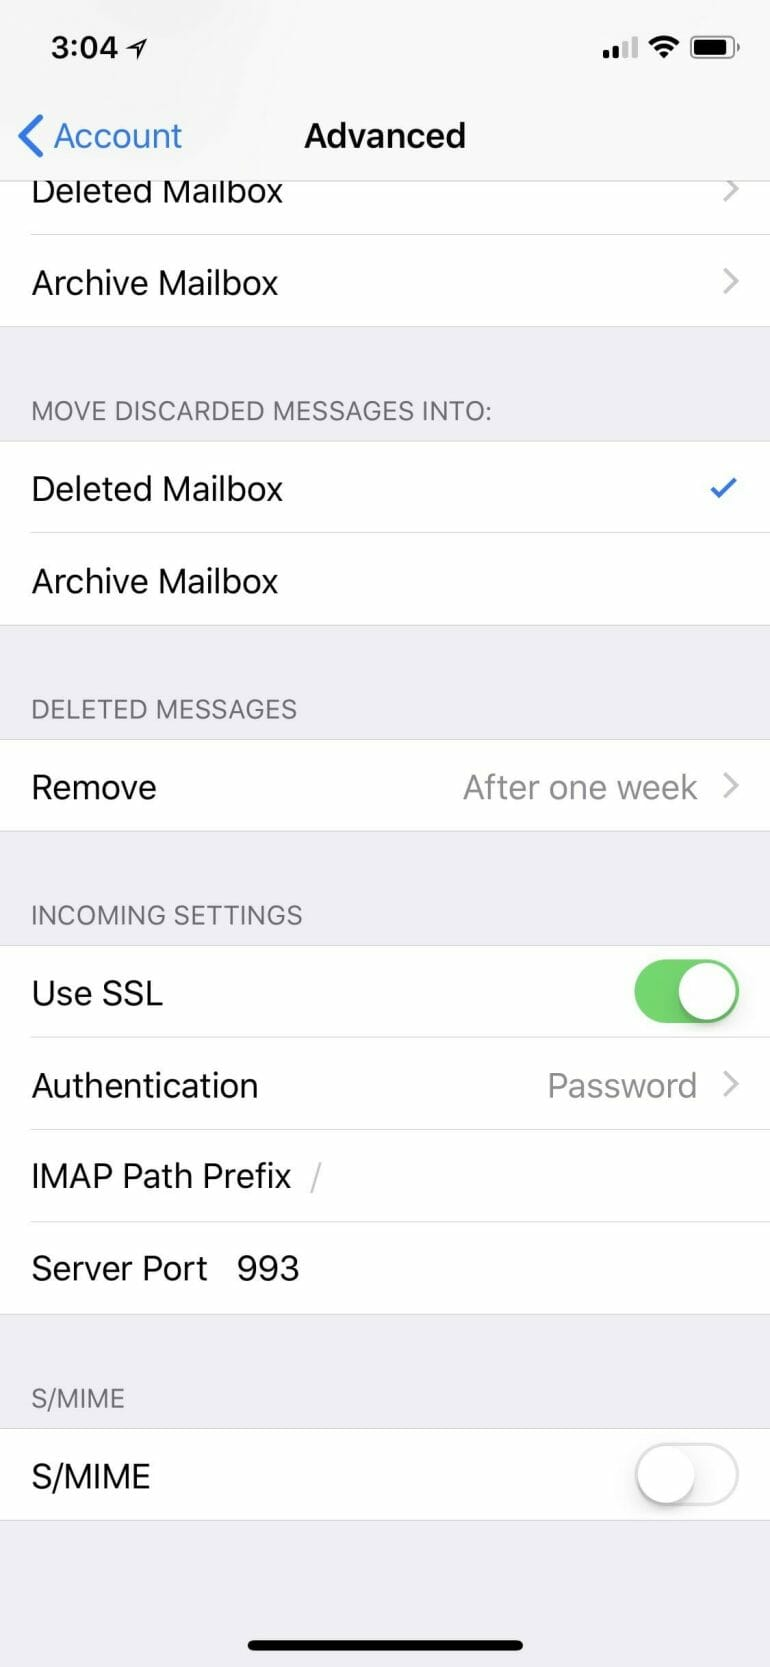 iOS email account settings for incoming (IMAP) mail server